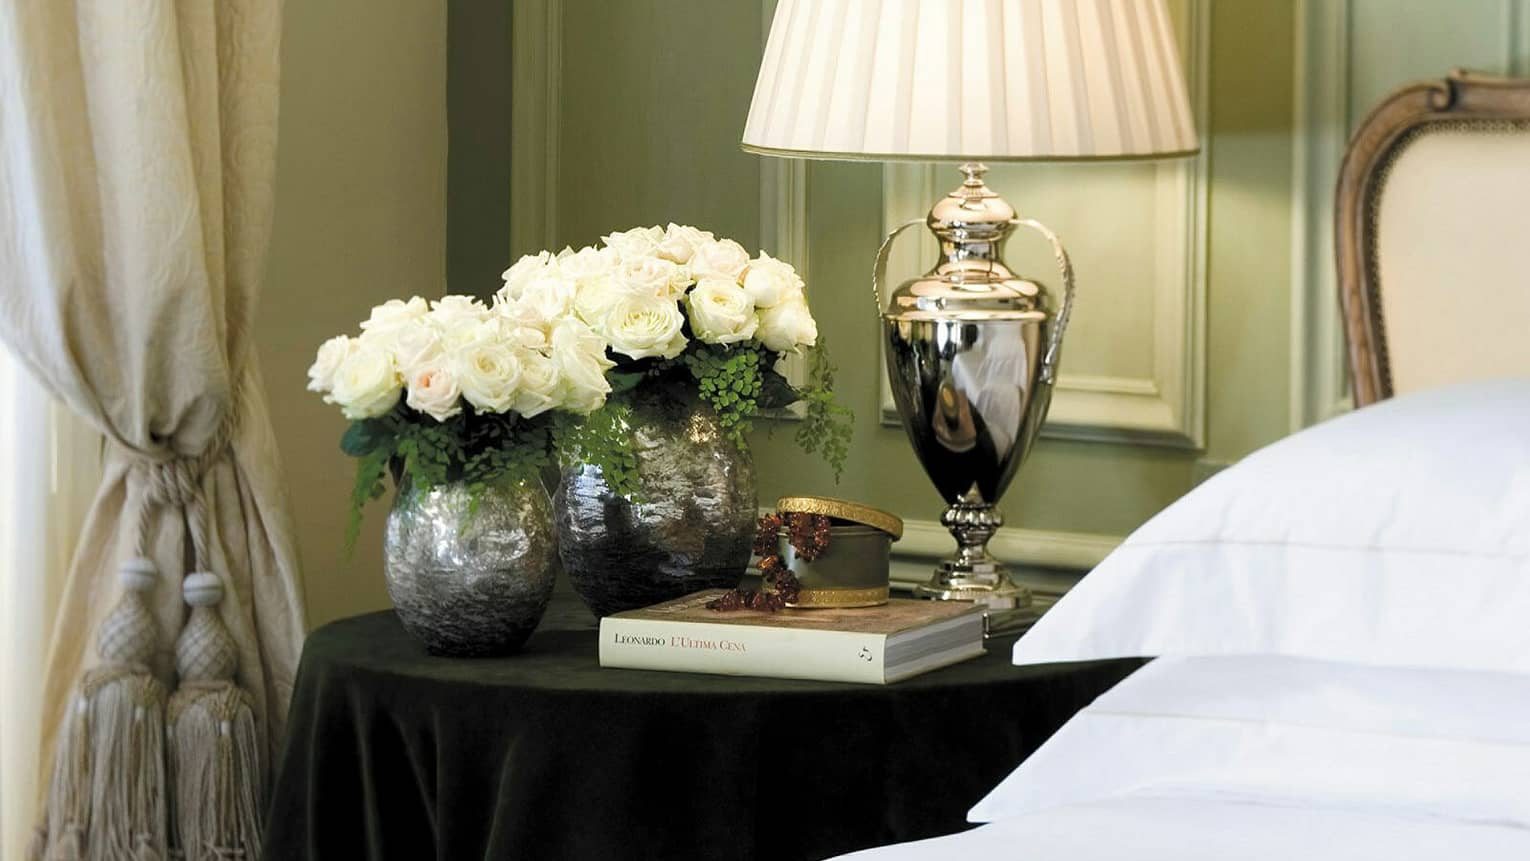 Superior Room silver lamp, vases with white roses, book on nightstand